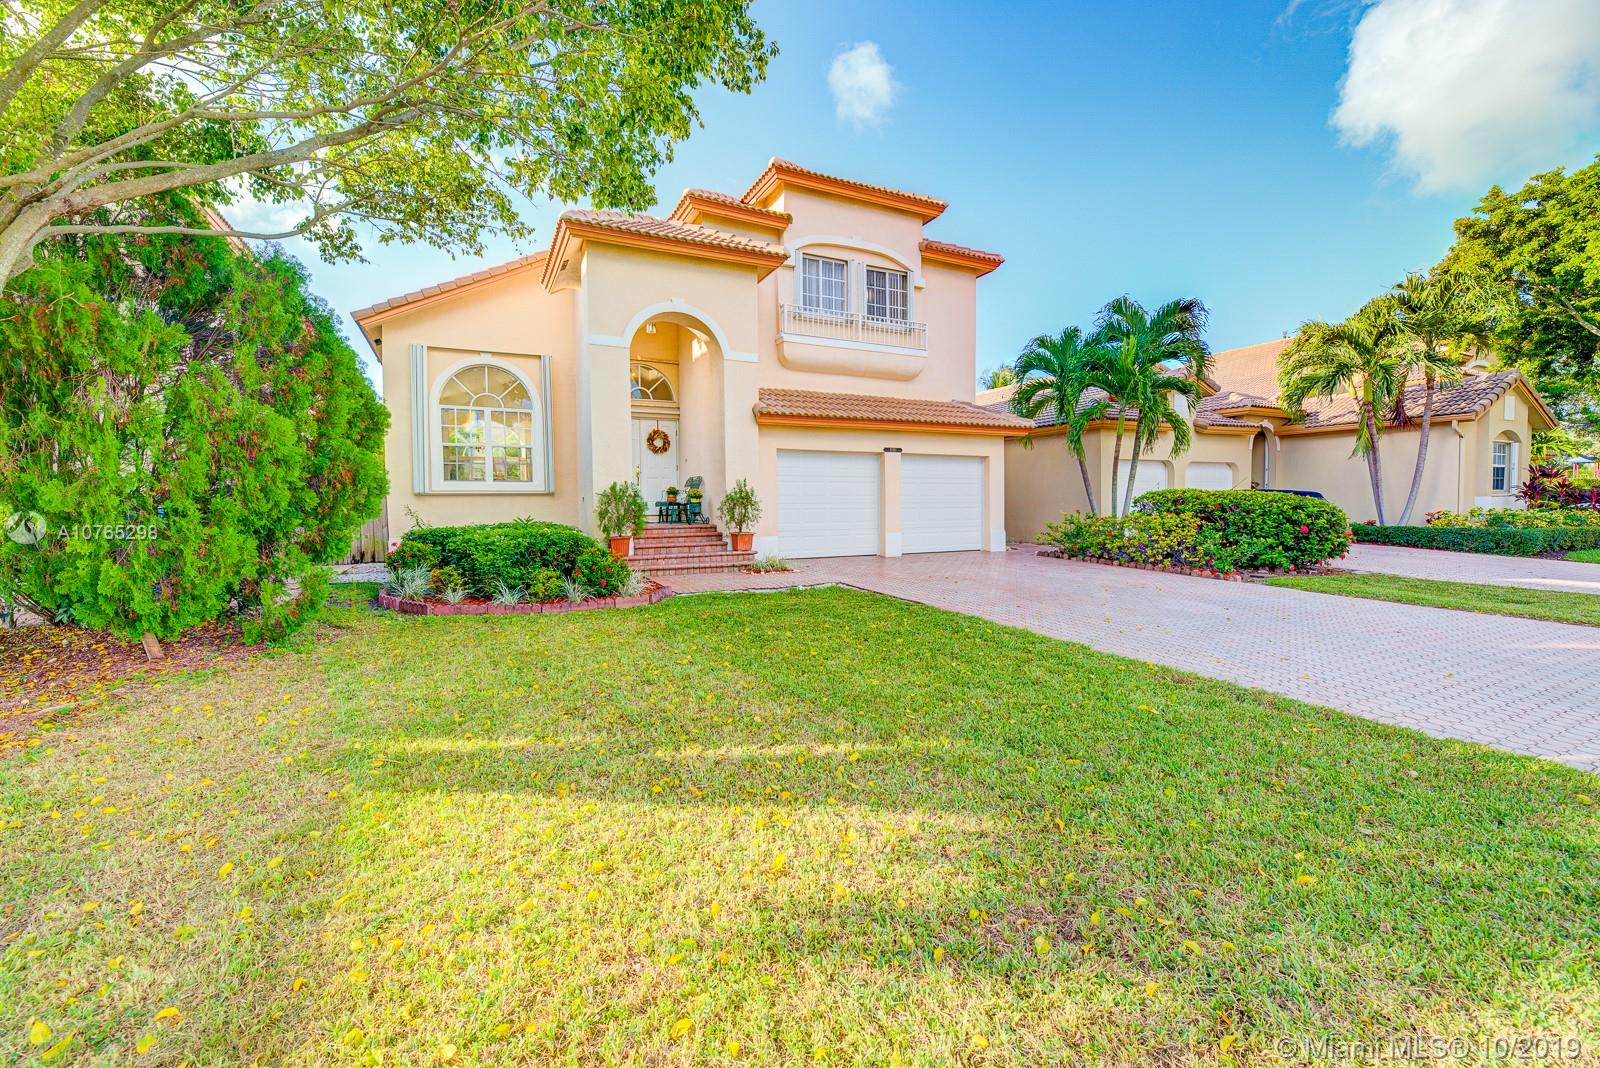 9790 NW 31st St, Doral, Florida